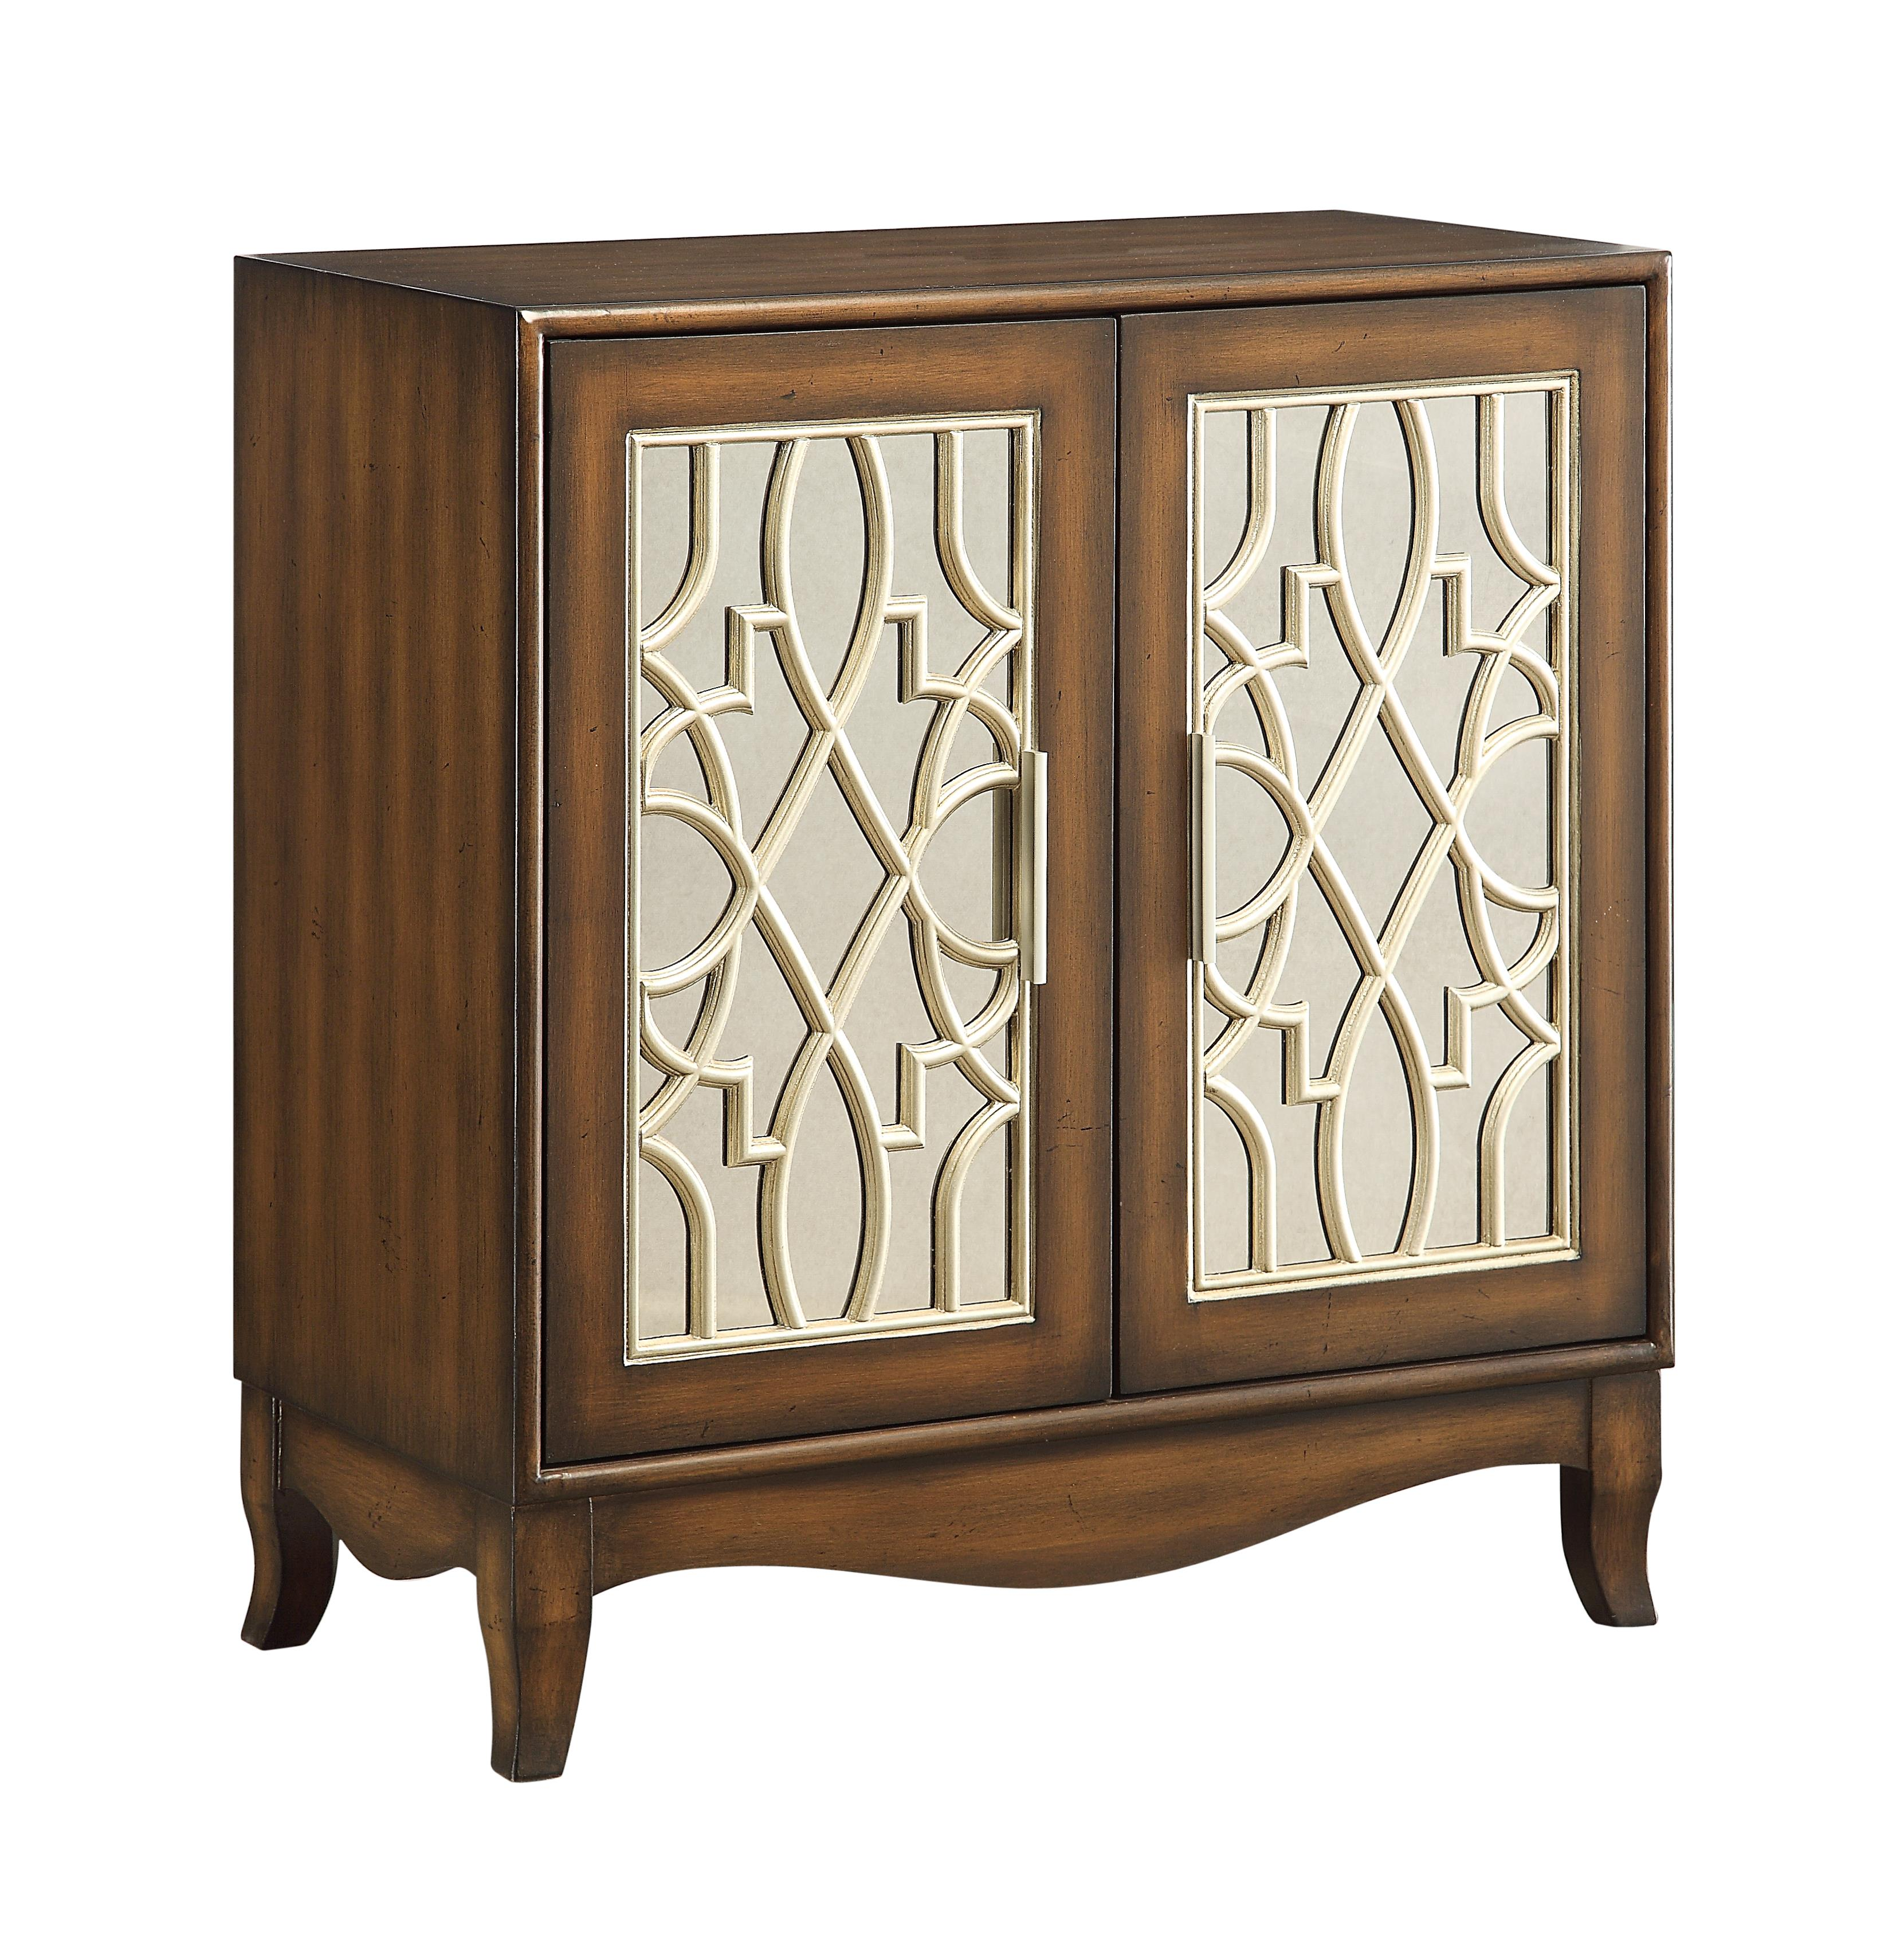 Coast to Coast Imports Coast to Coast Accents Two Door Cabinet - Item Number: 70782